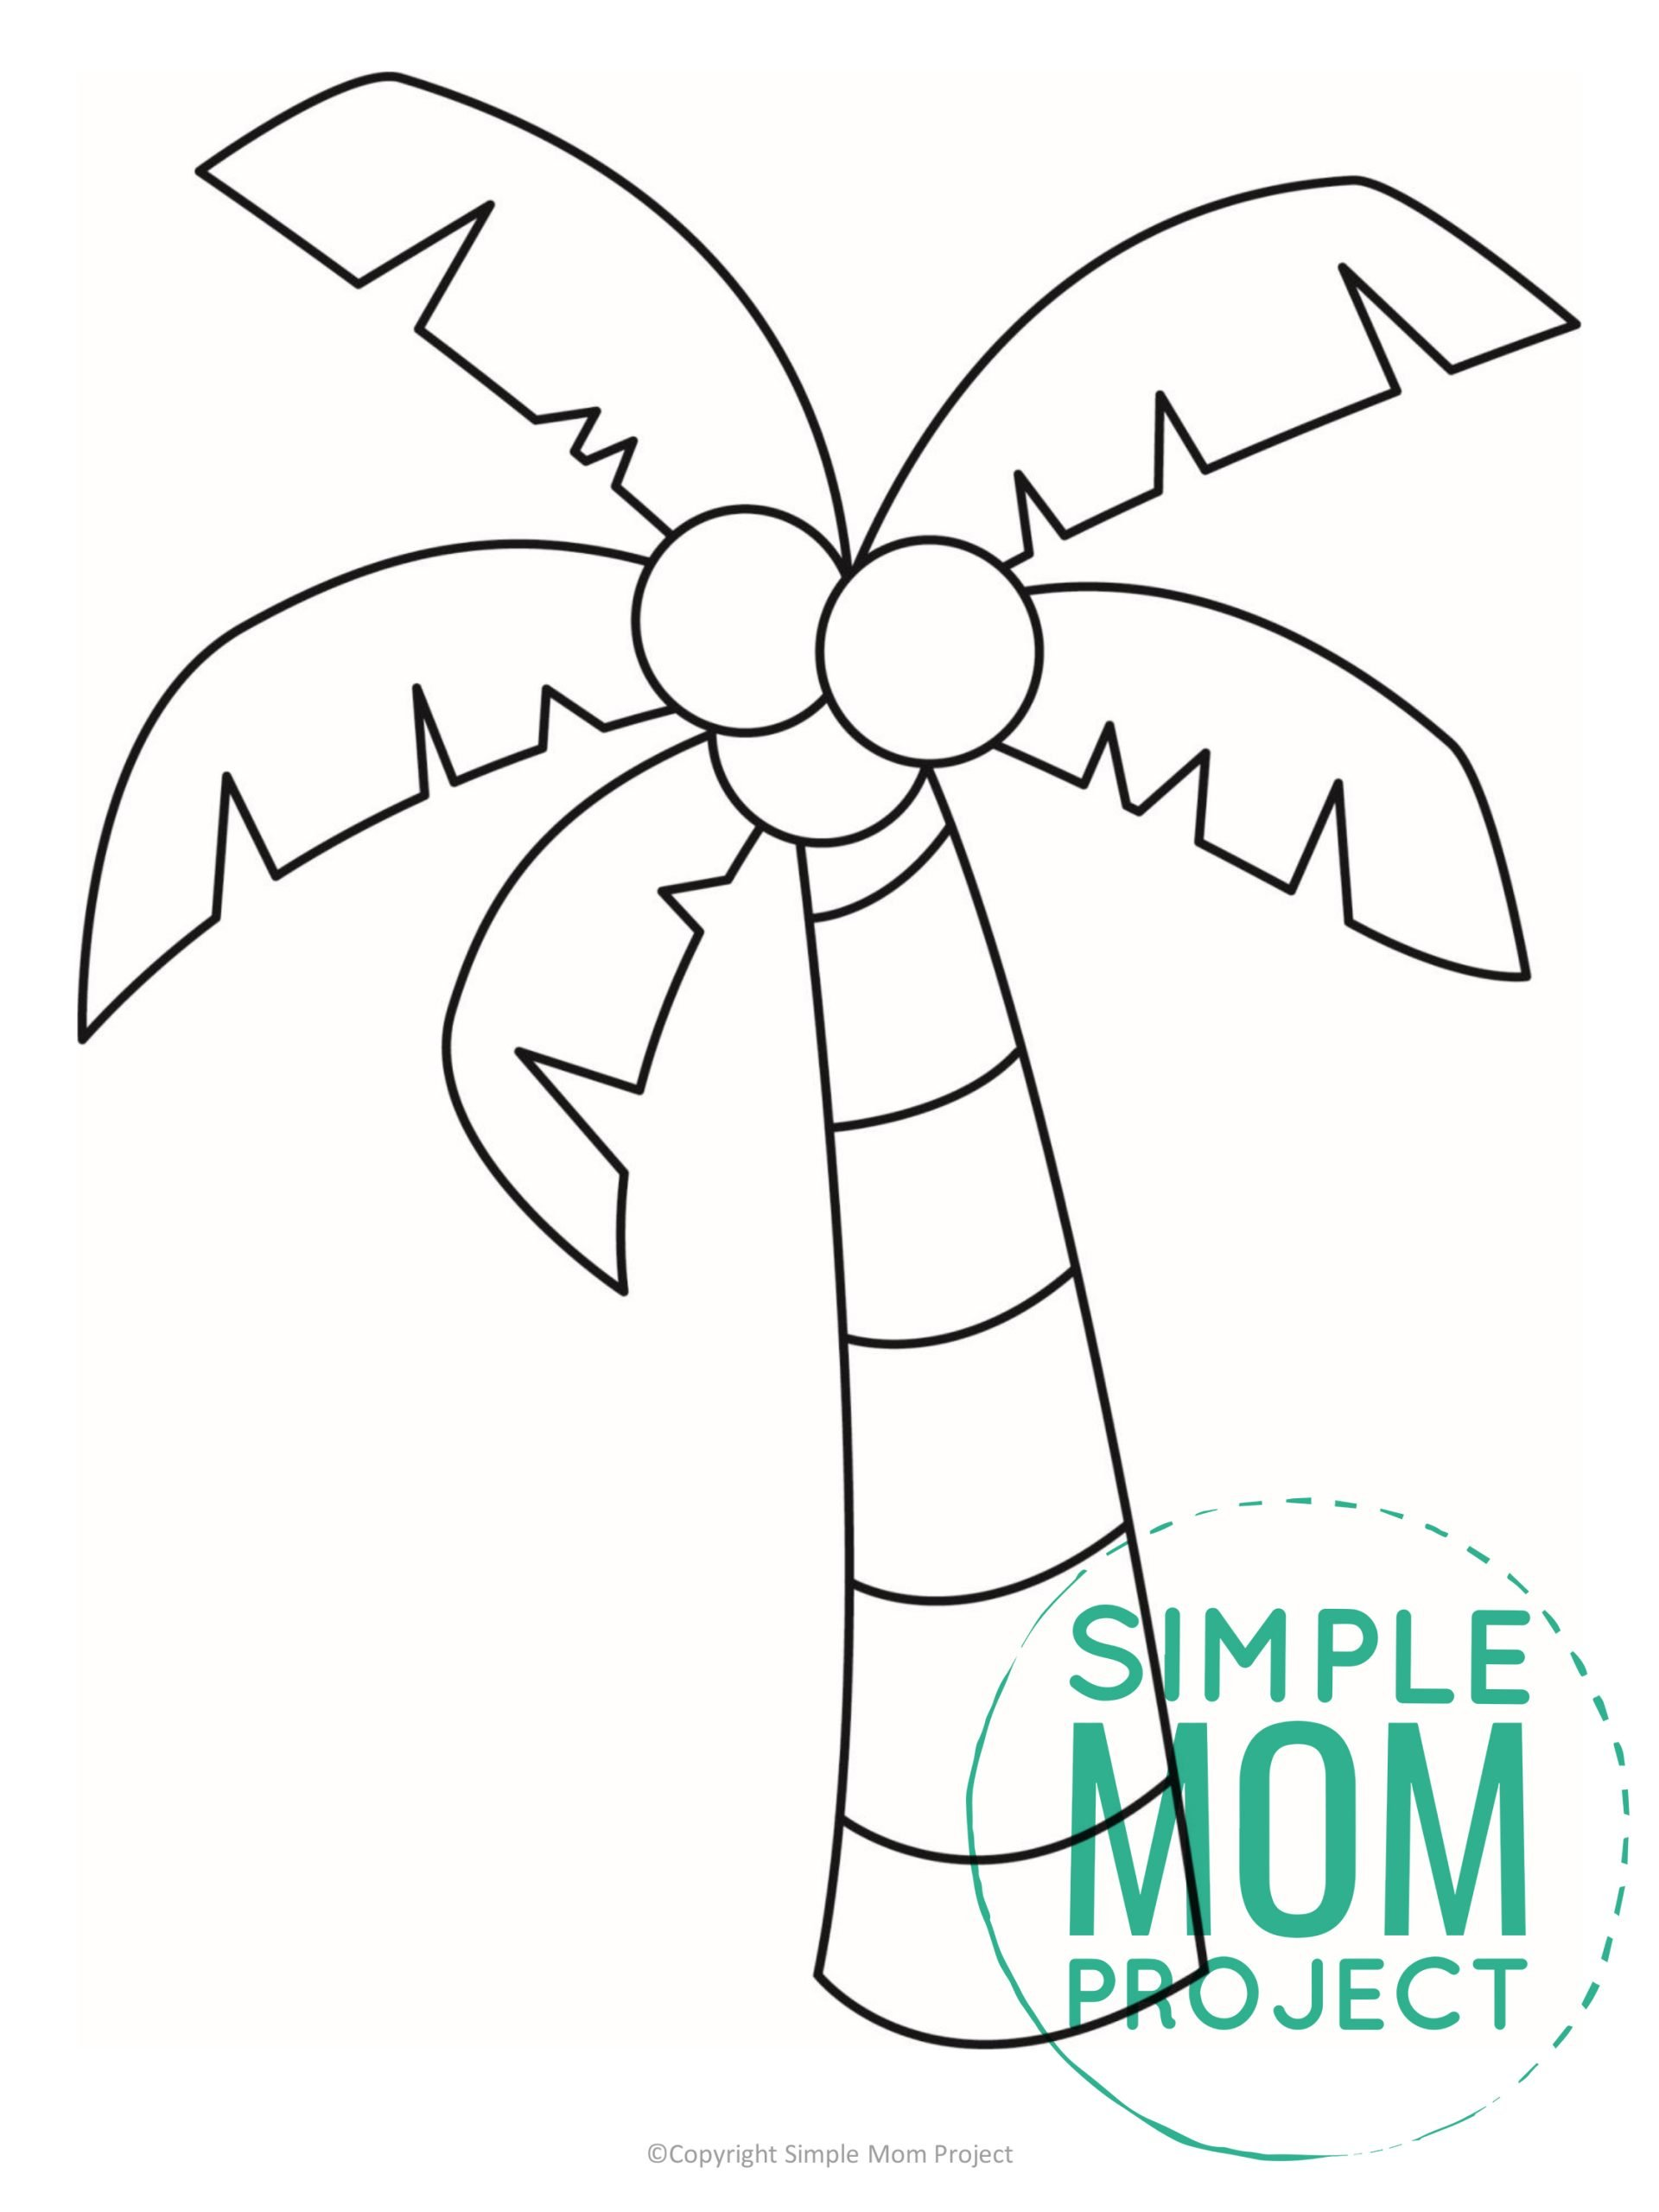 Free printable palm tree template for kids, preschoolers, and toddlers